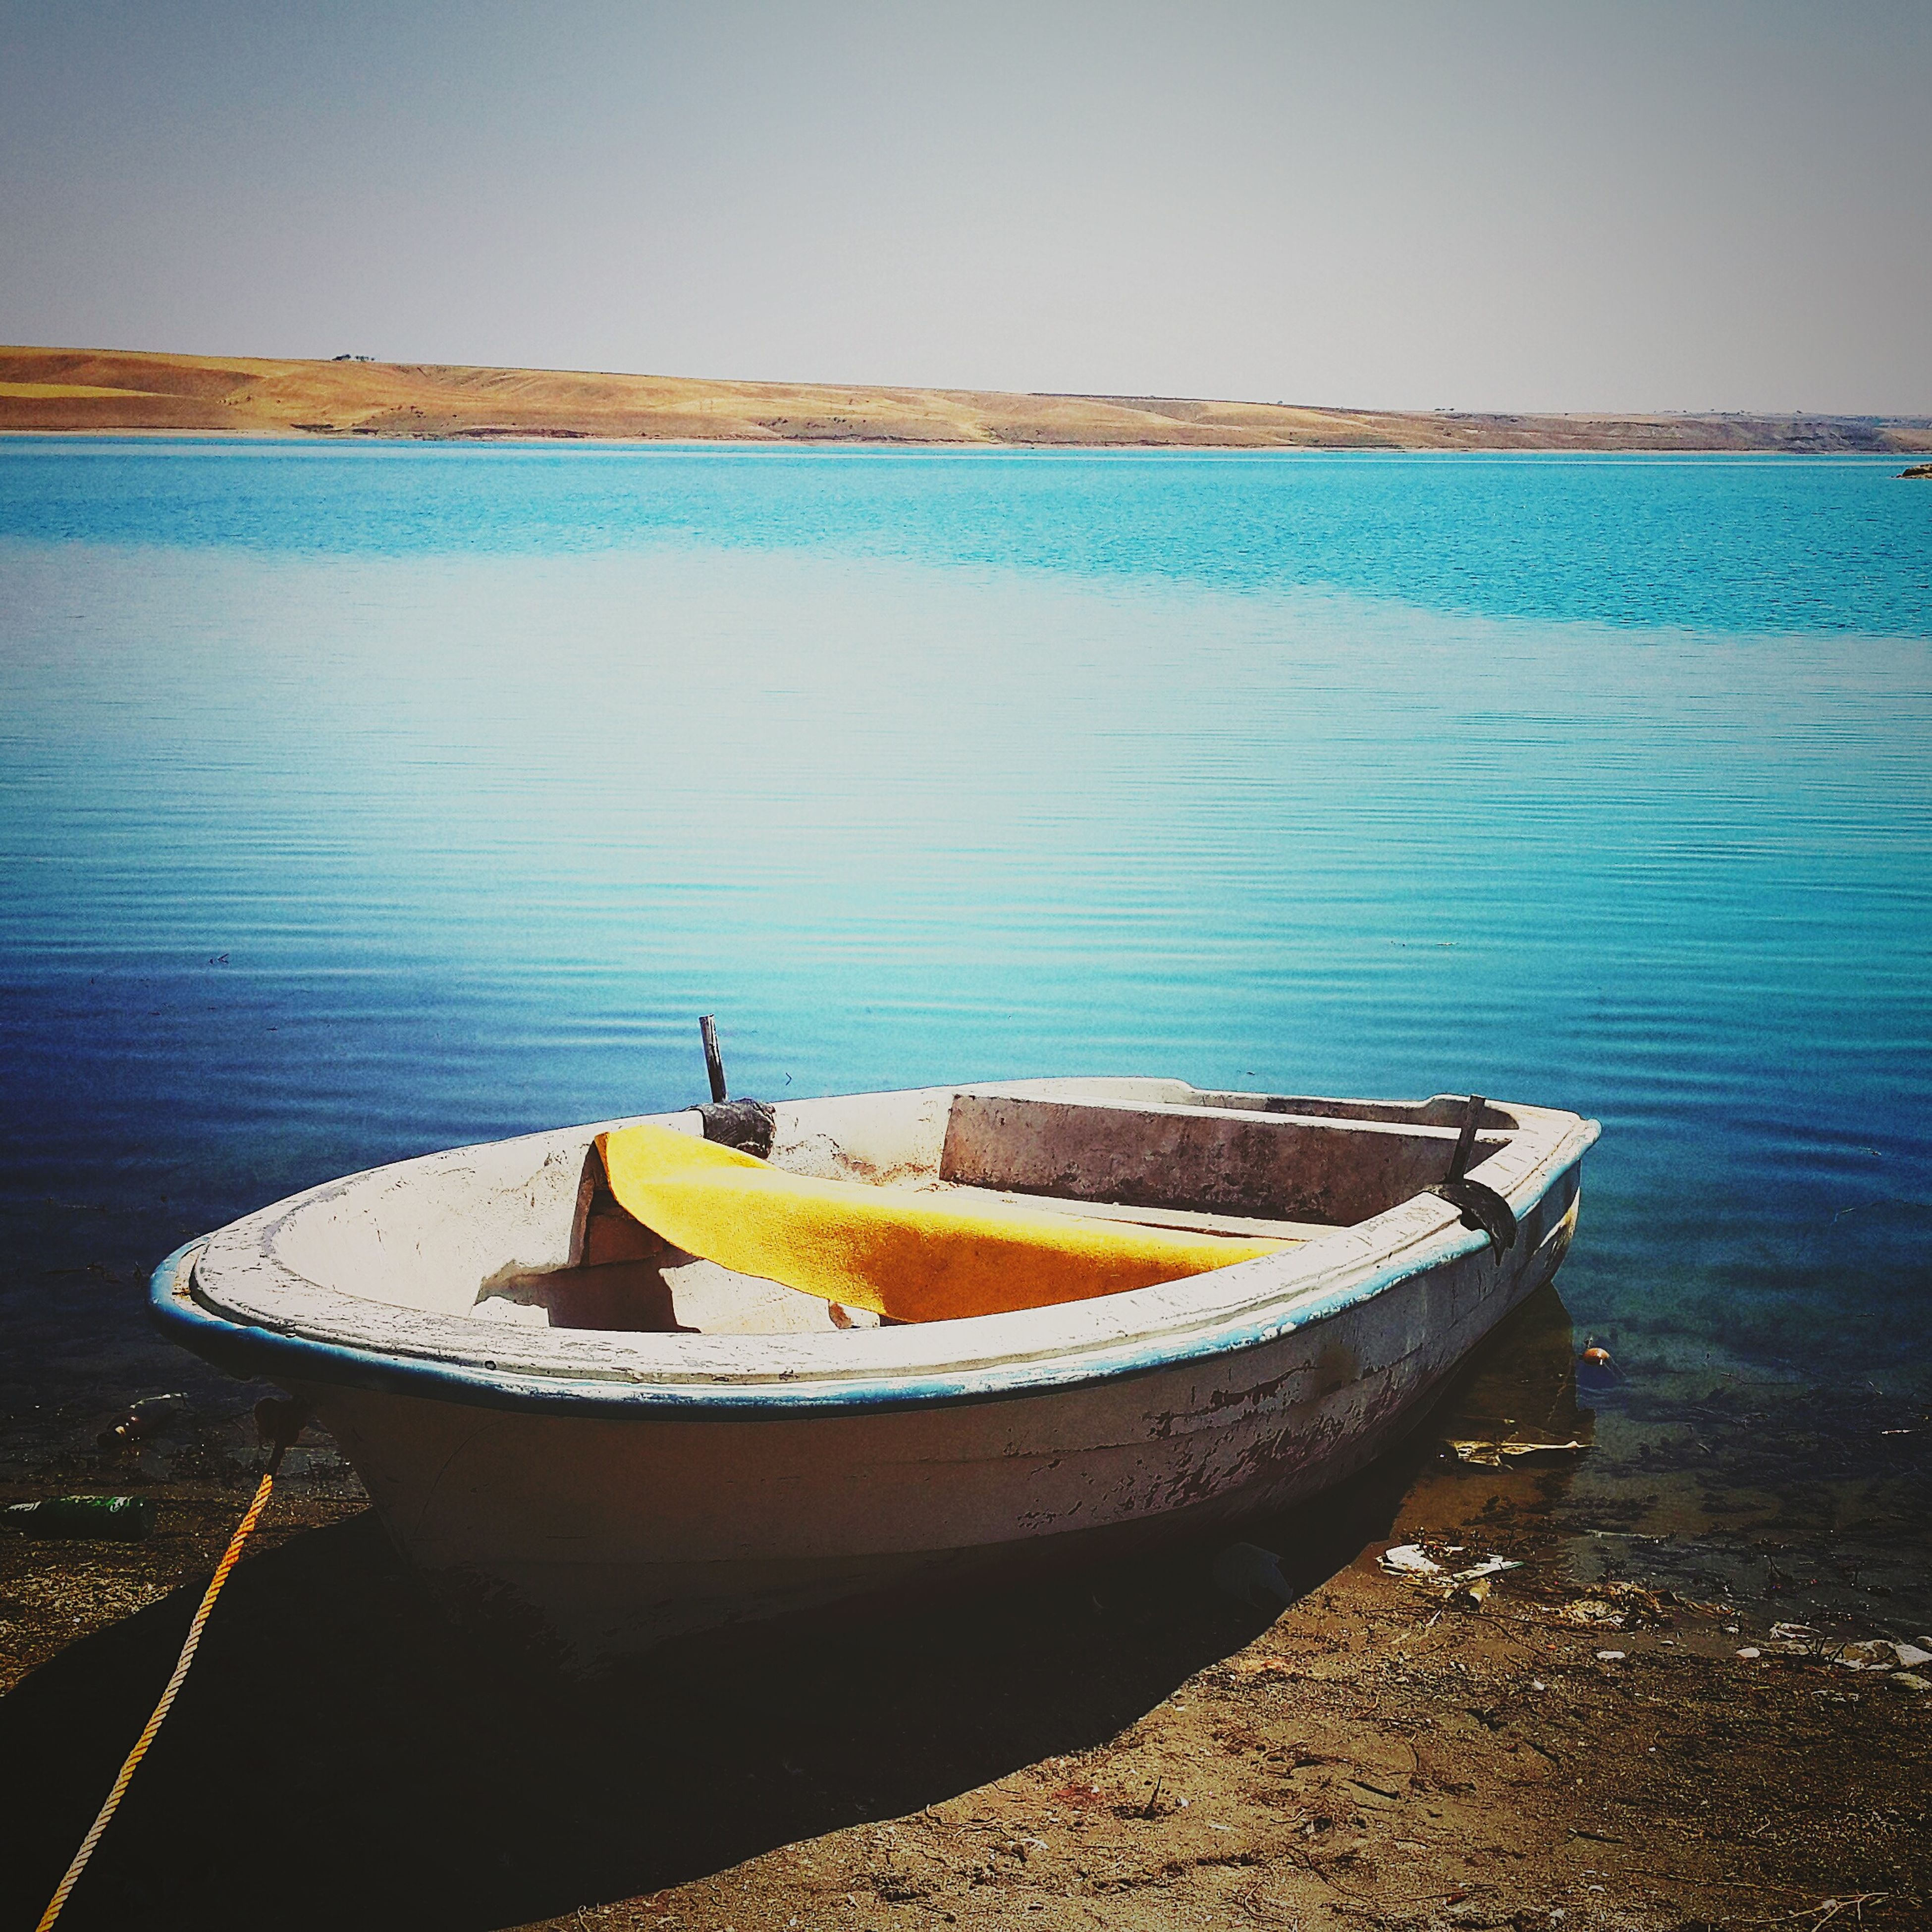 water, sea, nautical vessel, boat, moored, beach, blue, tranquility, shore, tranquil scene, sky, transportation, nature, scenics, horizon over water, beauty in nature, outdoors, mode of transport, day, no people